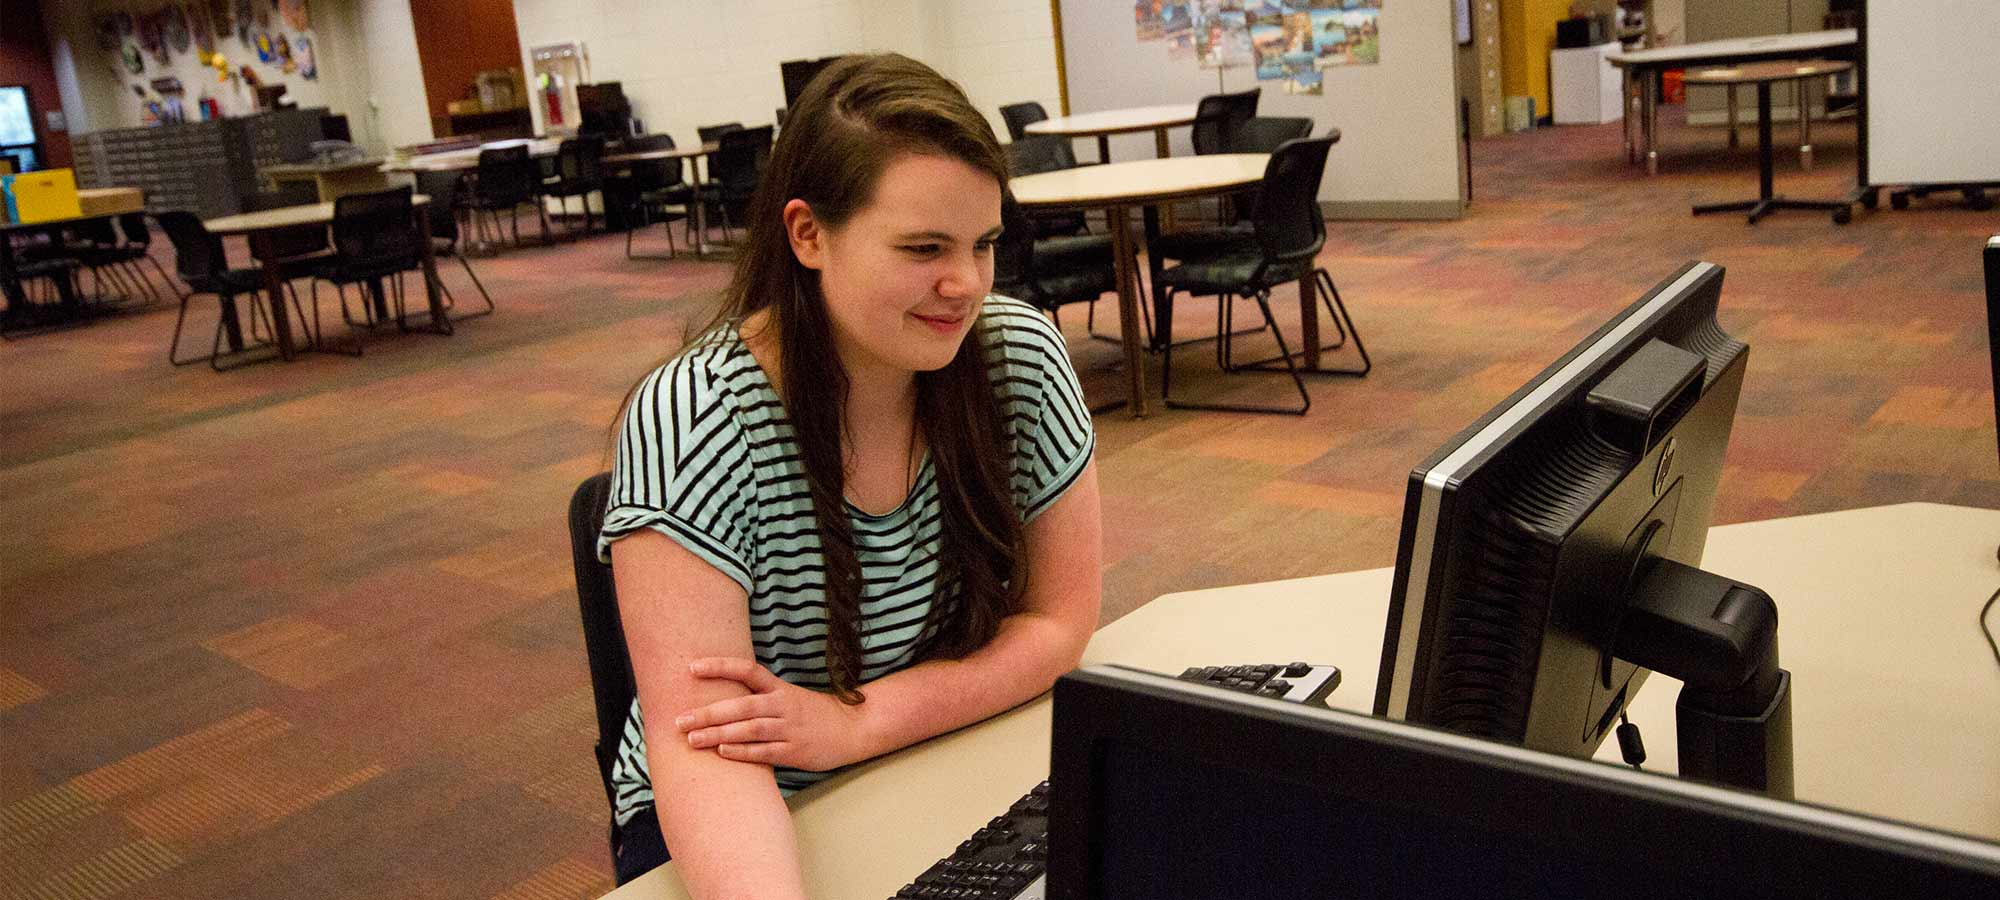 BHSU offers a variety of online classes to help you pursue your educational goals on your schedule.